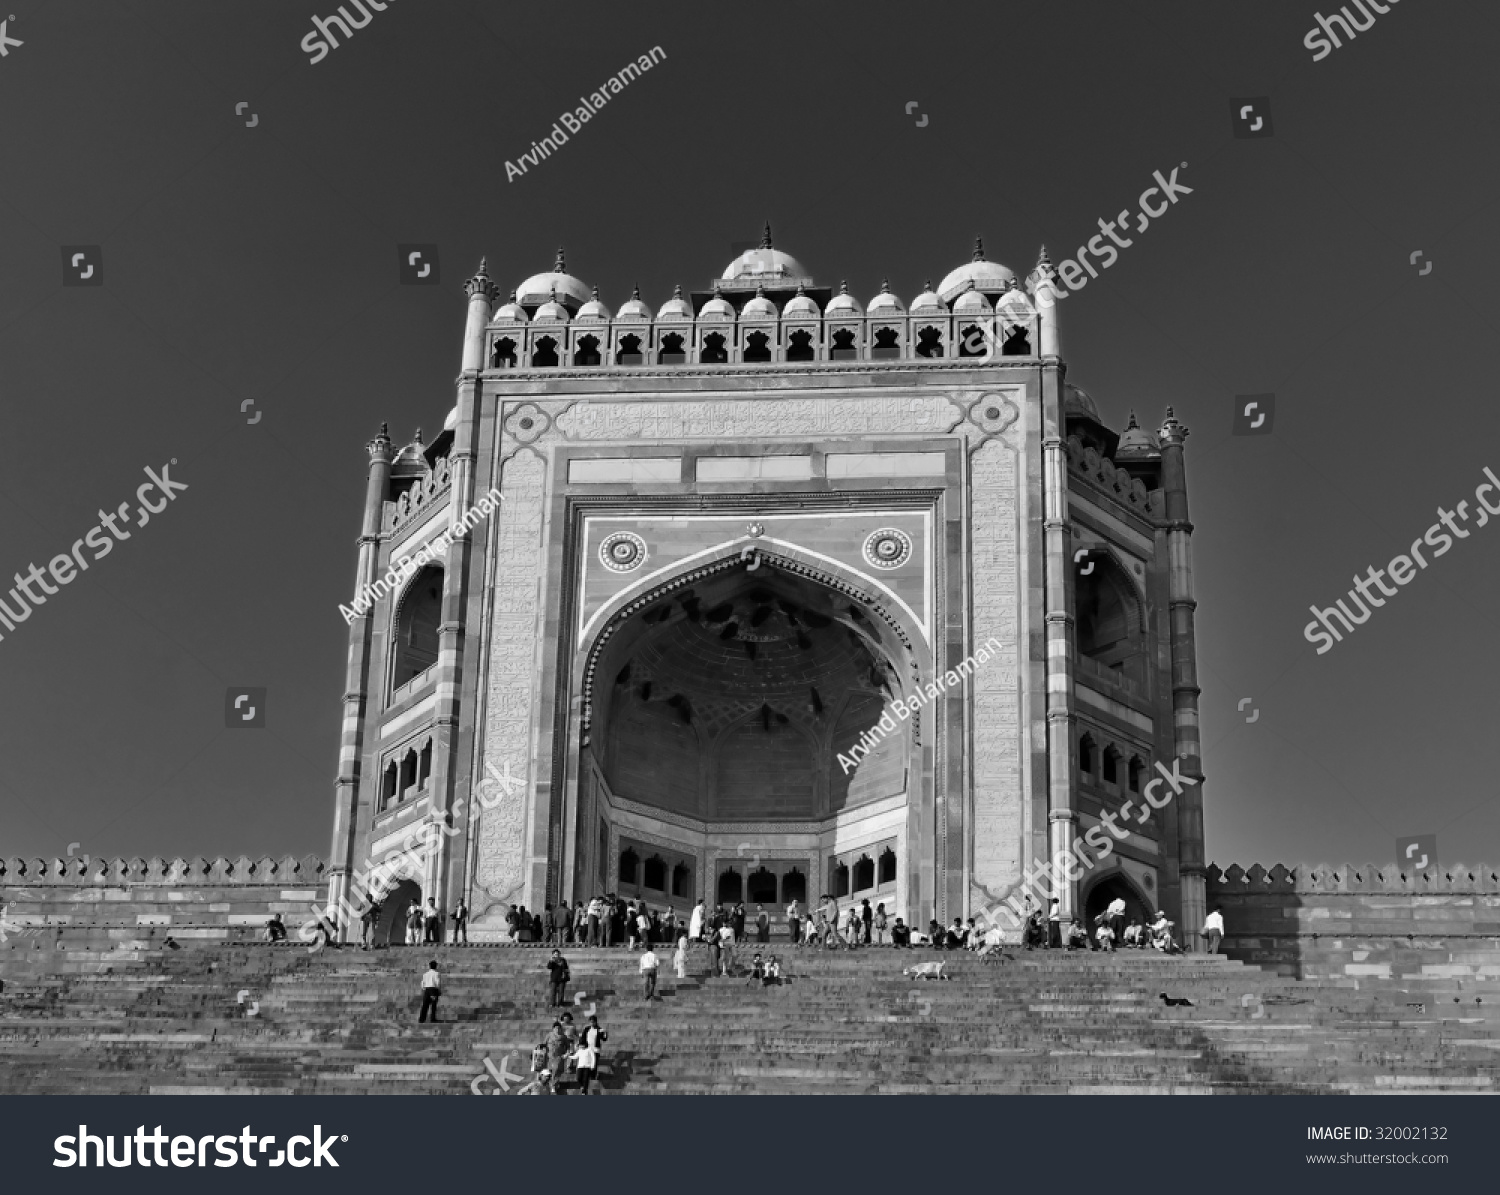 biggest gate in the continent of asia stock photo 32002132 shutterstock. Black Bedroom Furniture Sets. Home Design Ideas